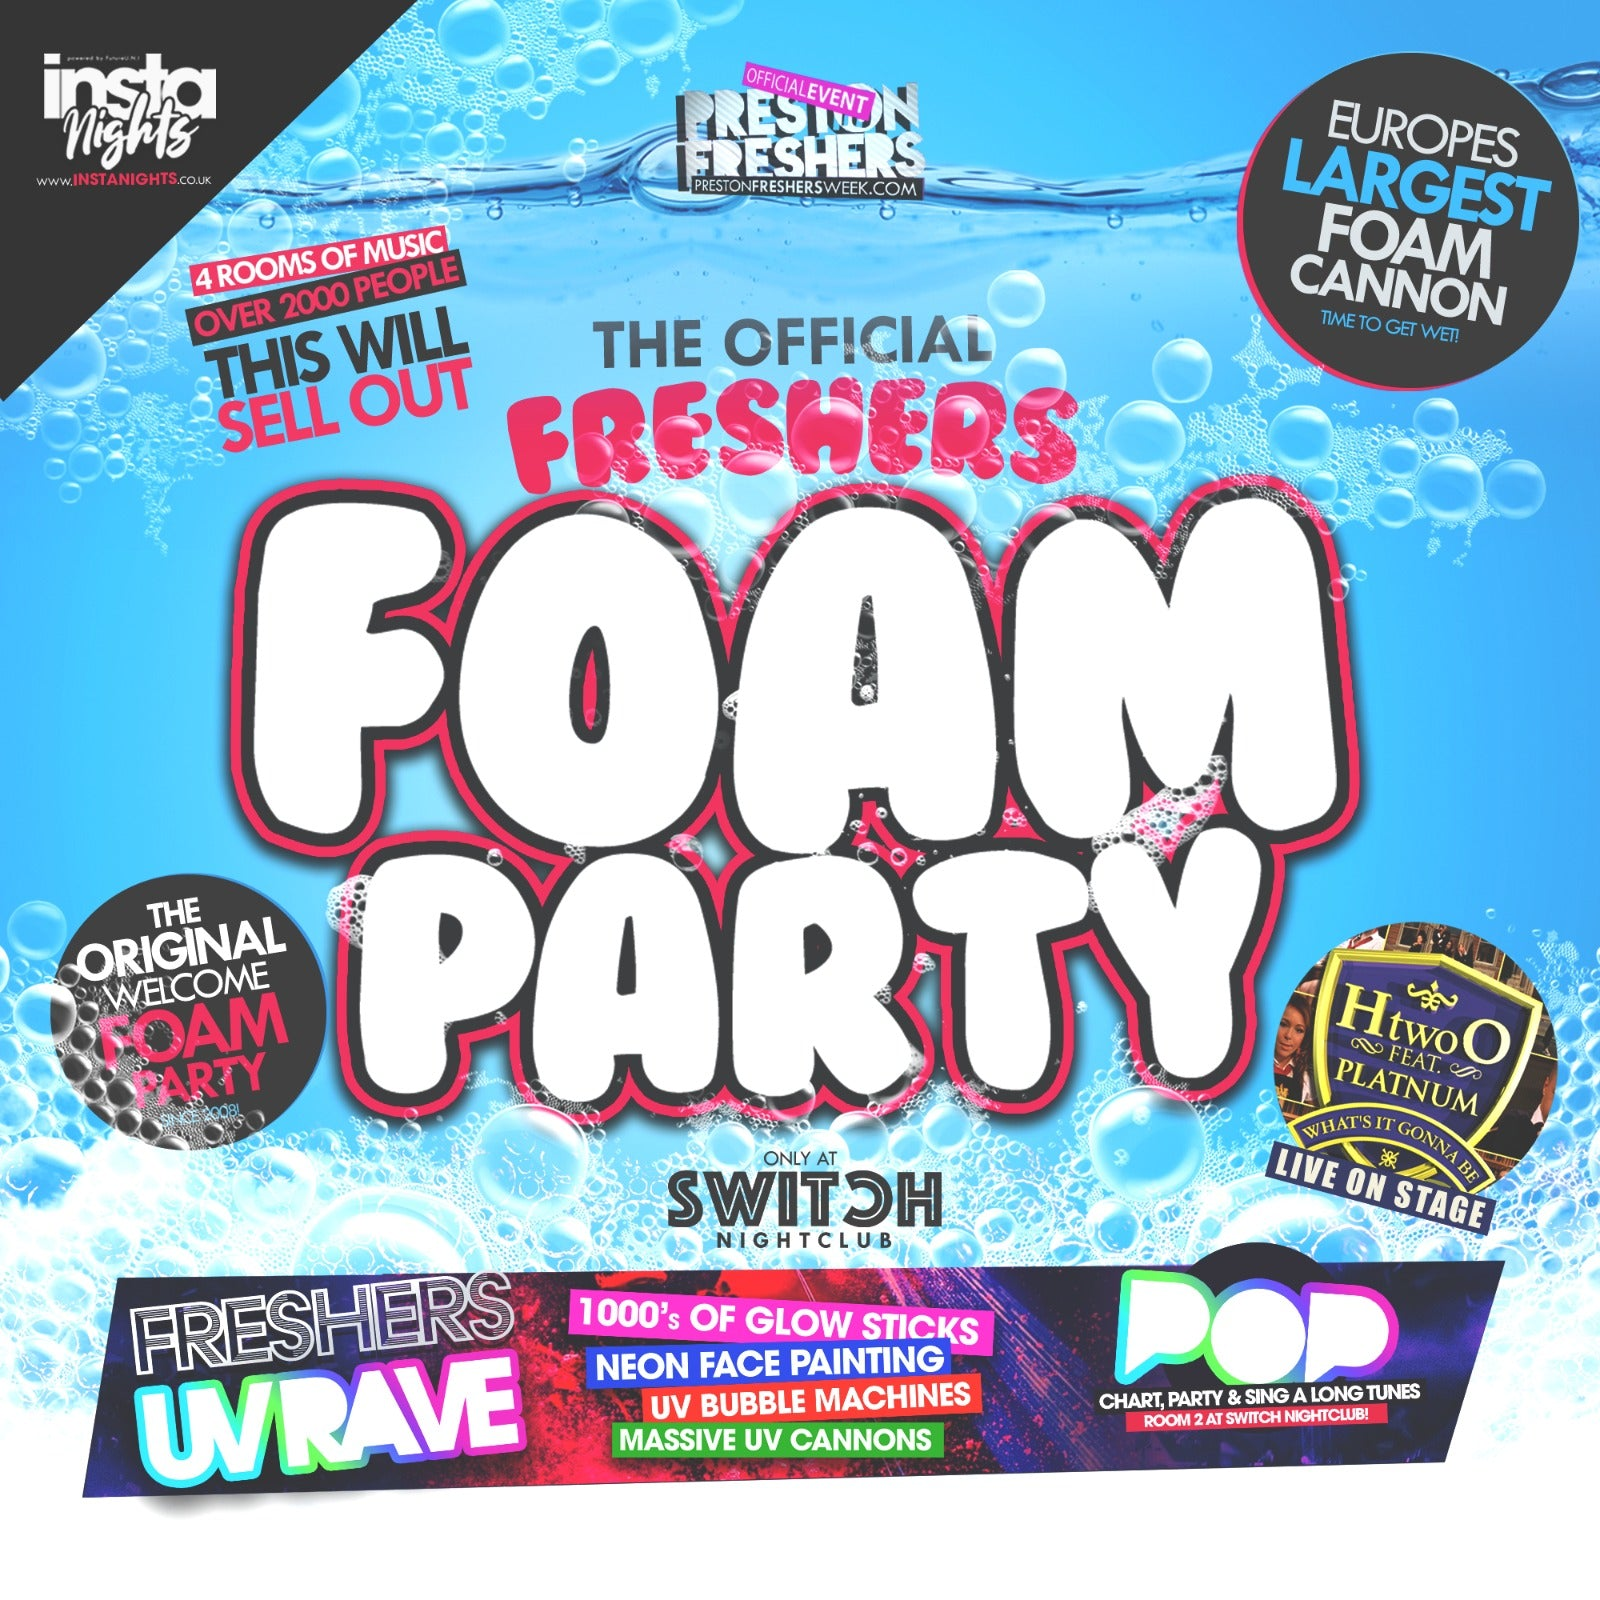 Freshers Foam Party ft H two 0 Platnum - 15th Sep